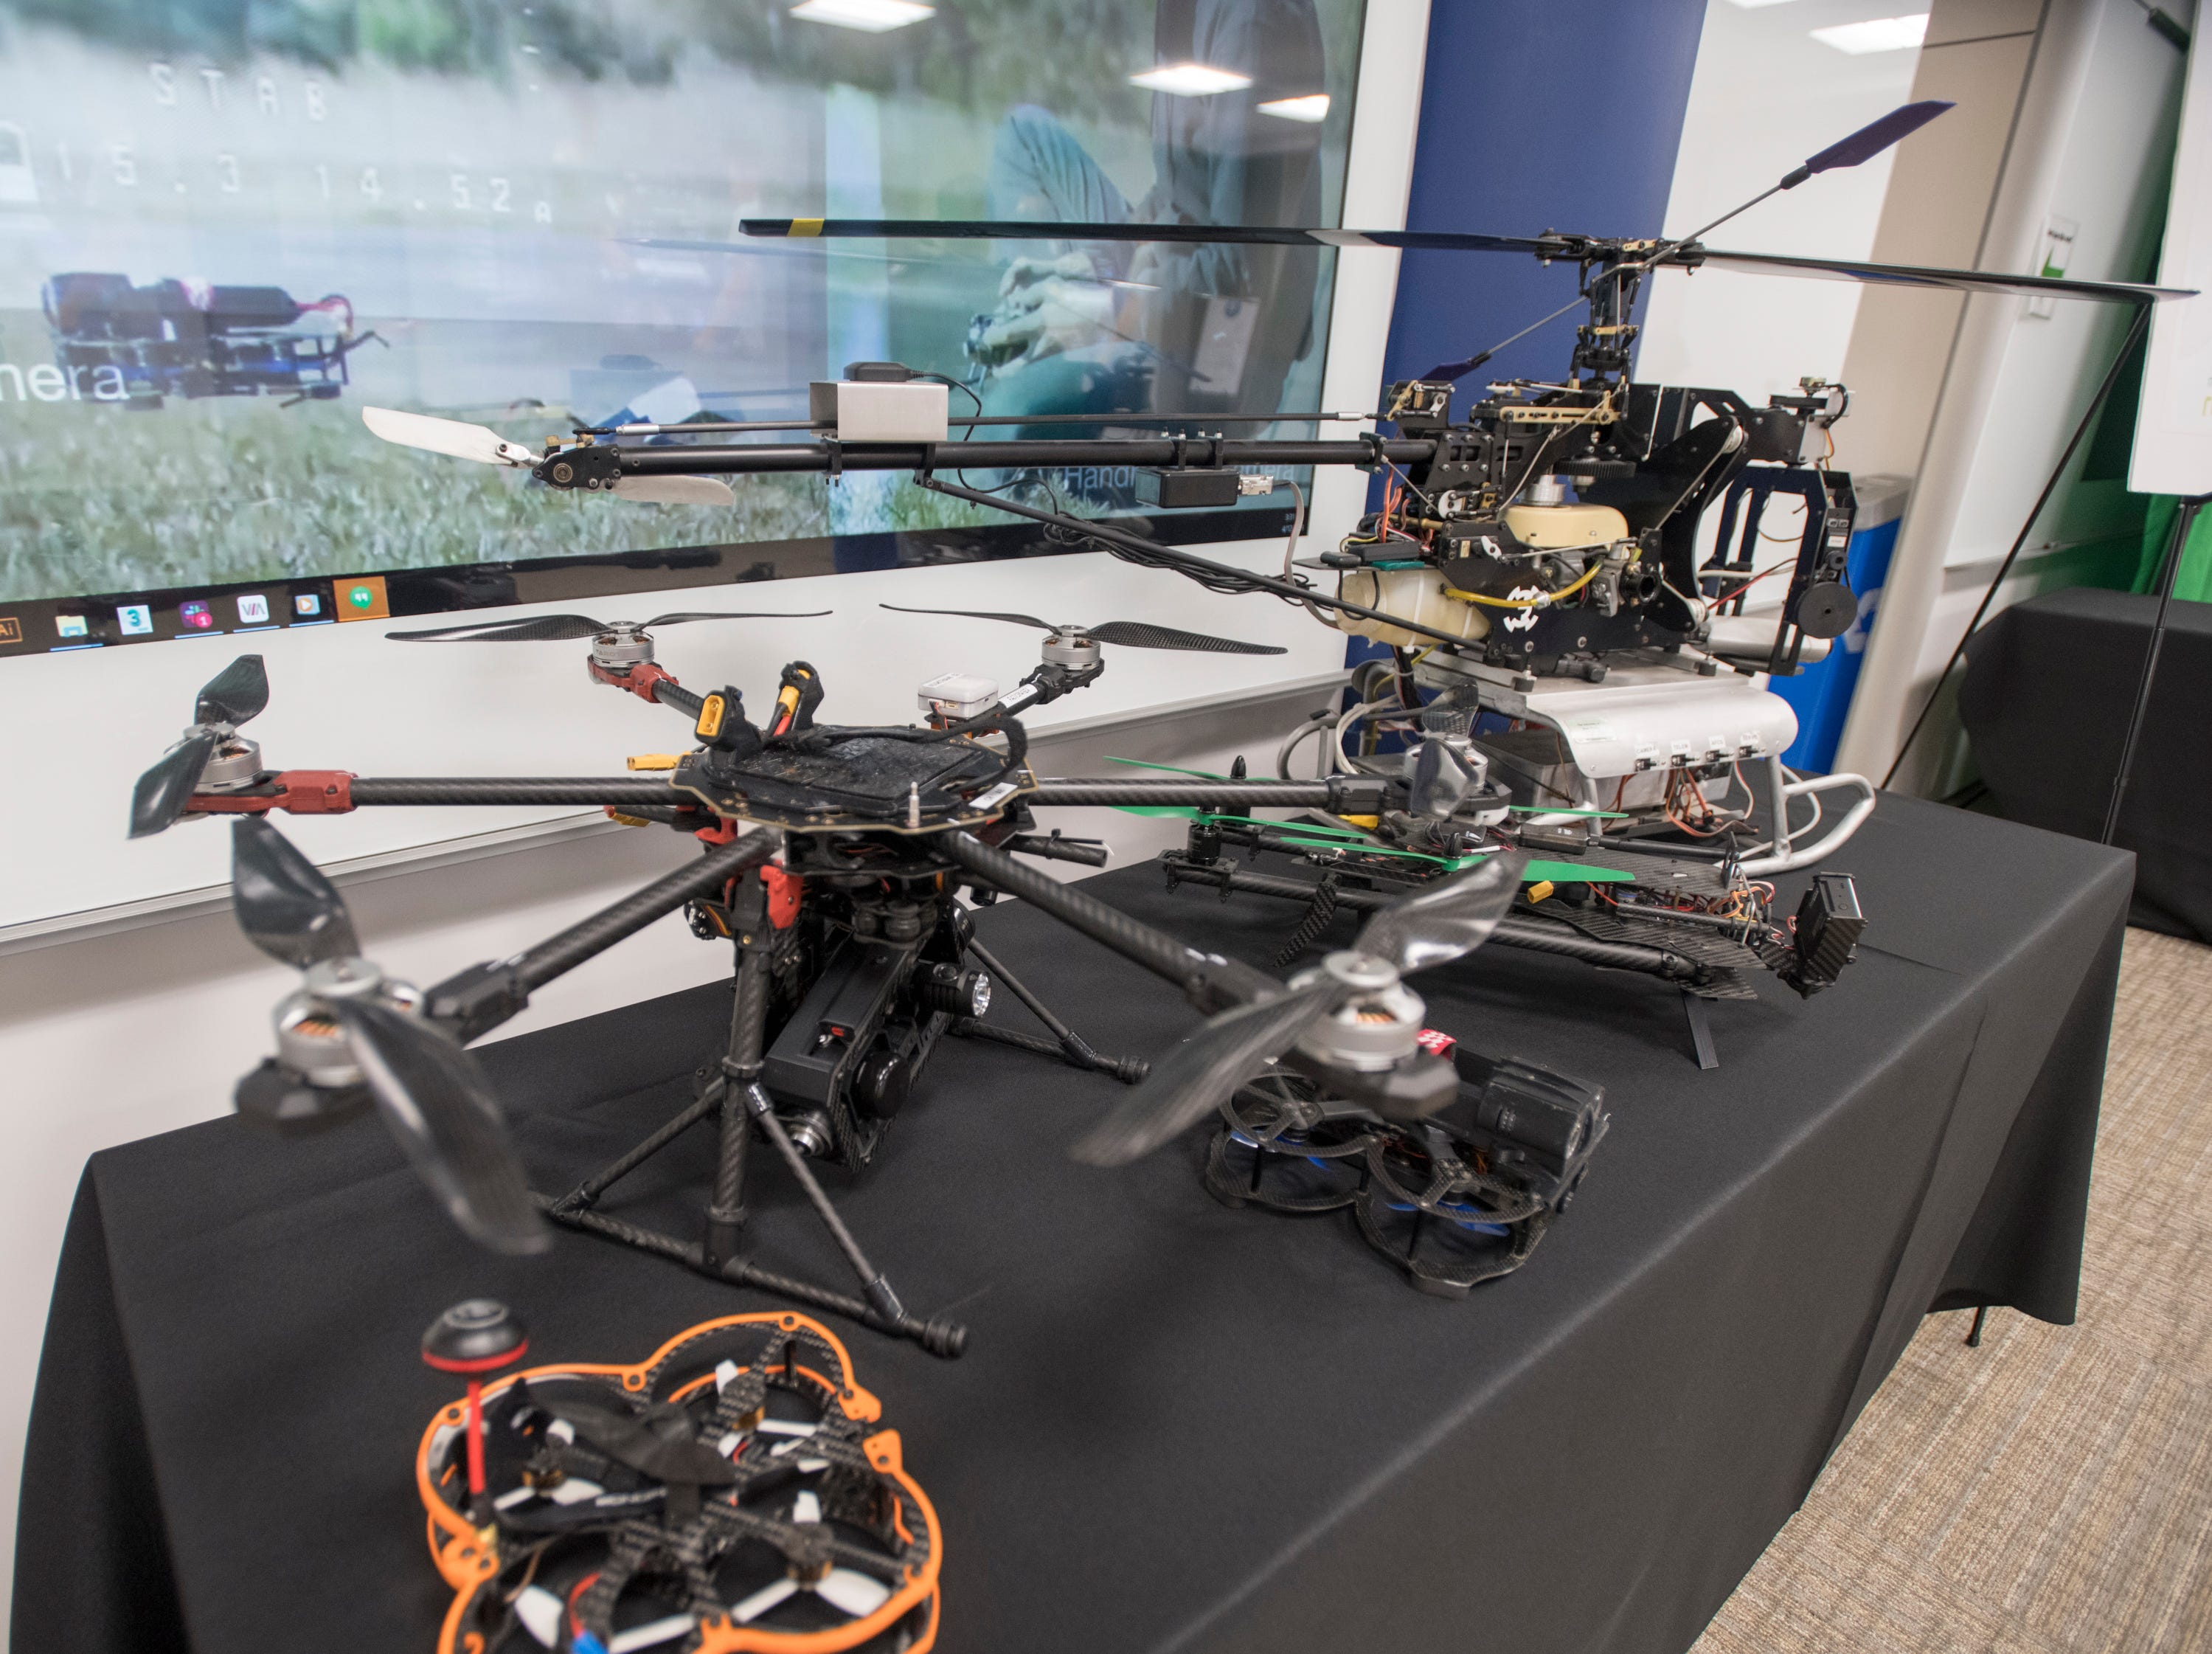 Drones on display during the IHMC Open House in downtown Pensacola on Friday, April 12, 2019.